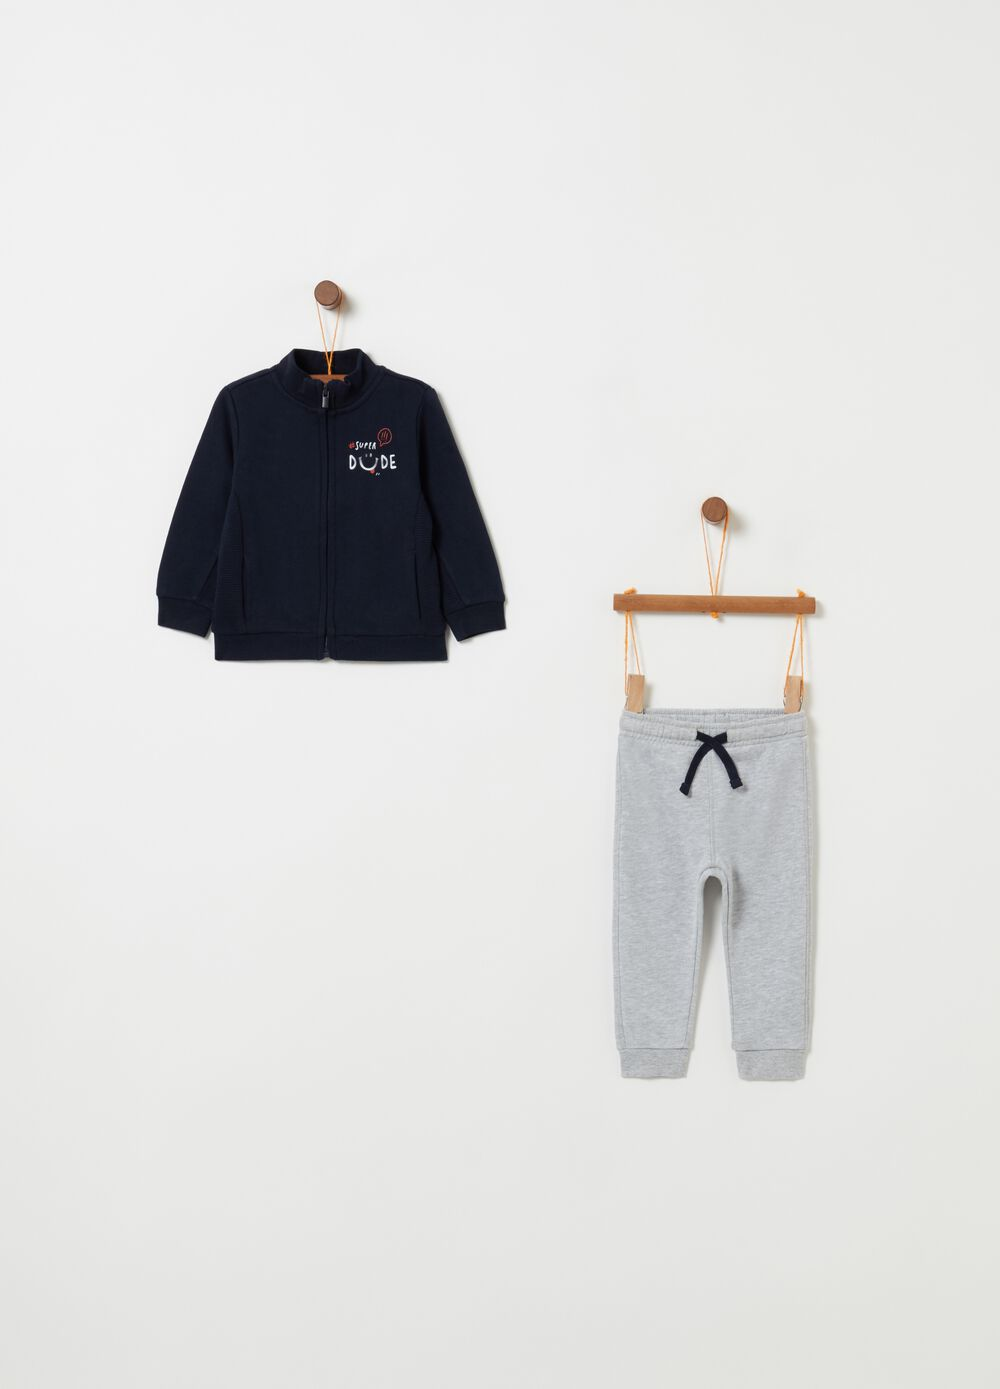 Jogging set with full-zip top and trousers